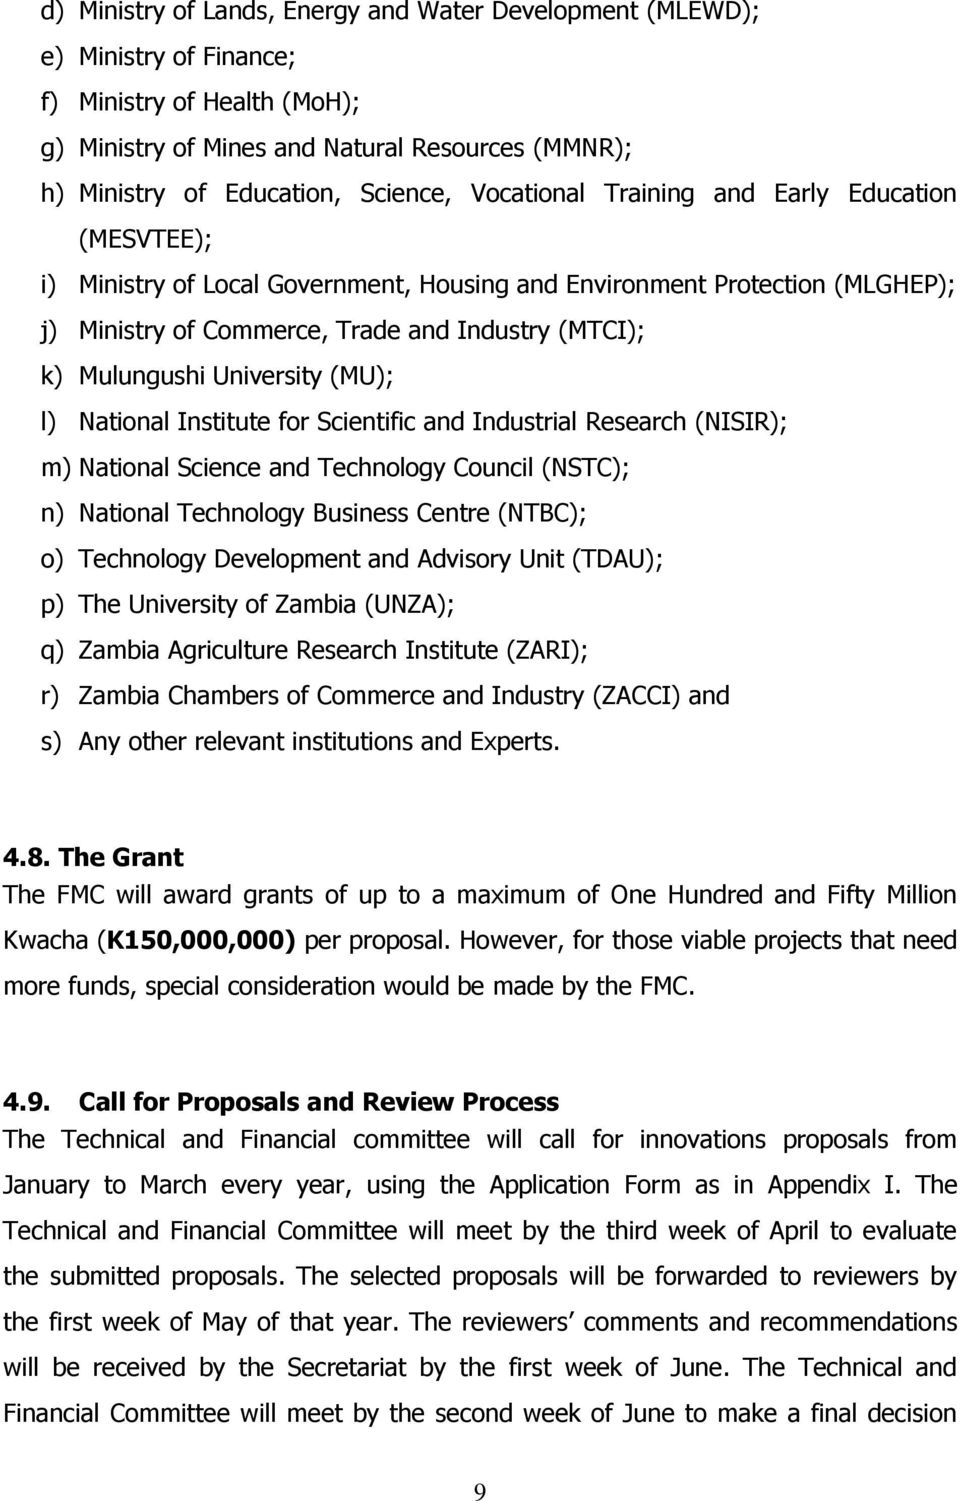 University (MU); l) National Institute for Scientific and Industrial Research (NISIR); m) National Science and Technology Council (NSTC); n) National Technology Business Centre (NTBC); o) Technology